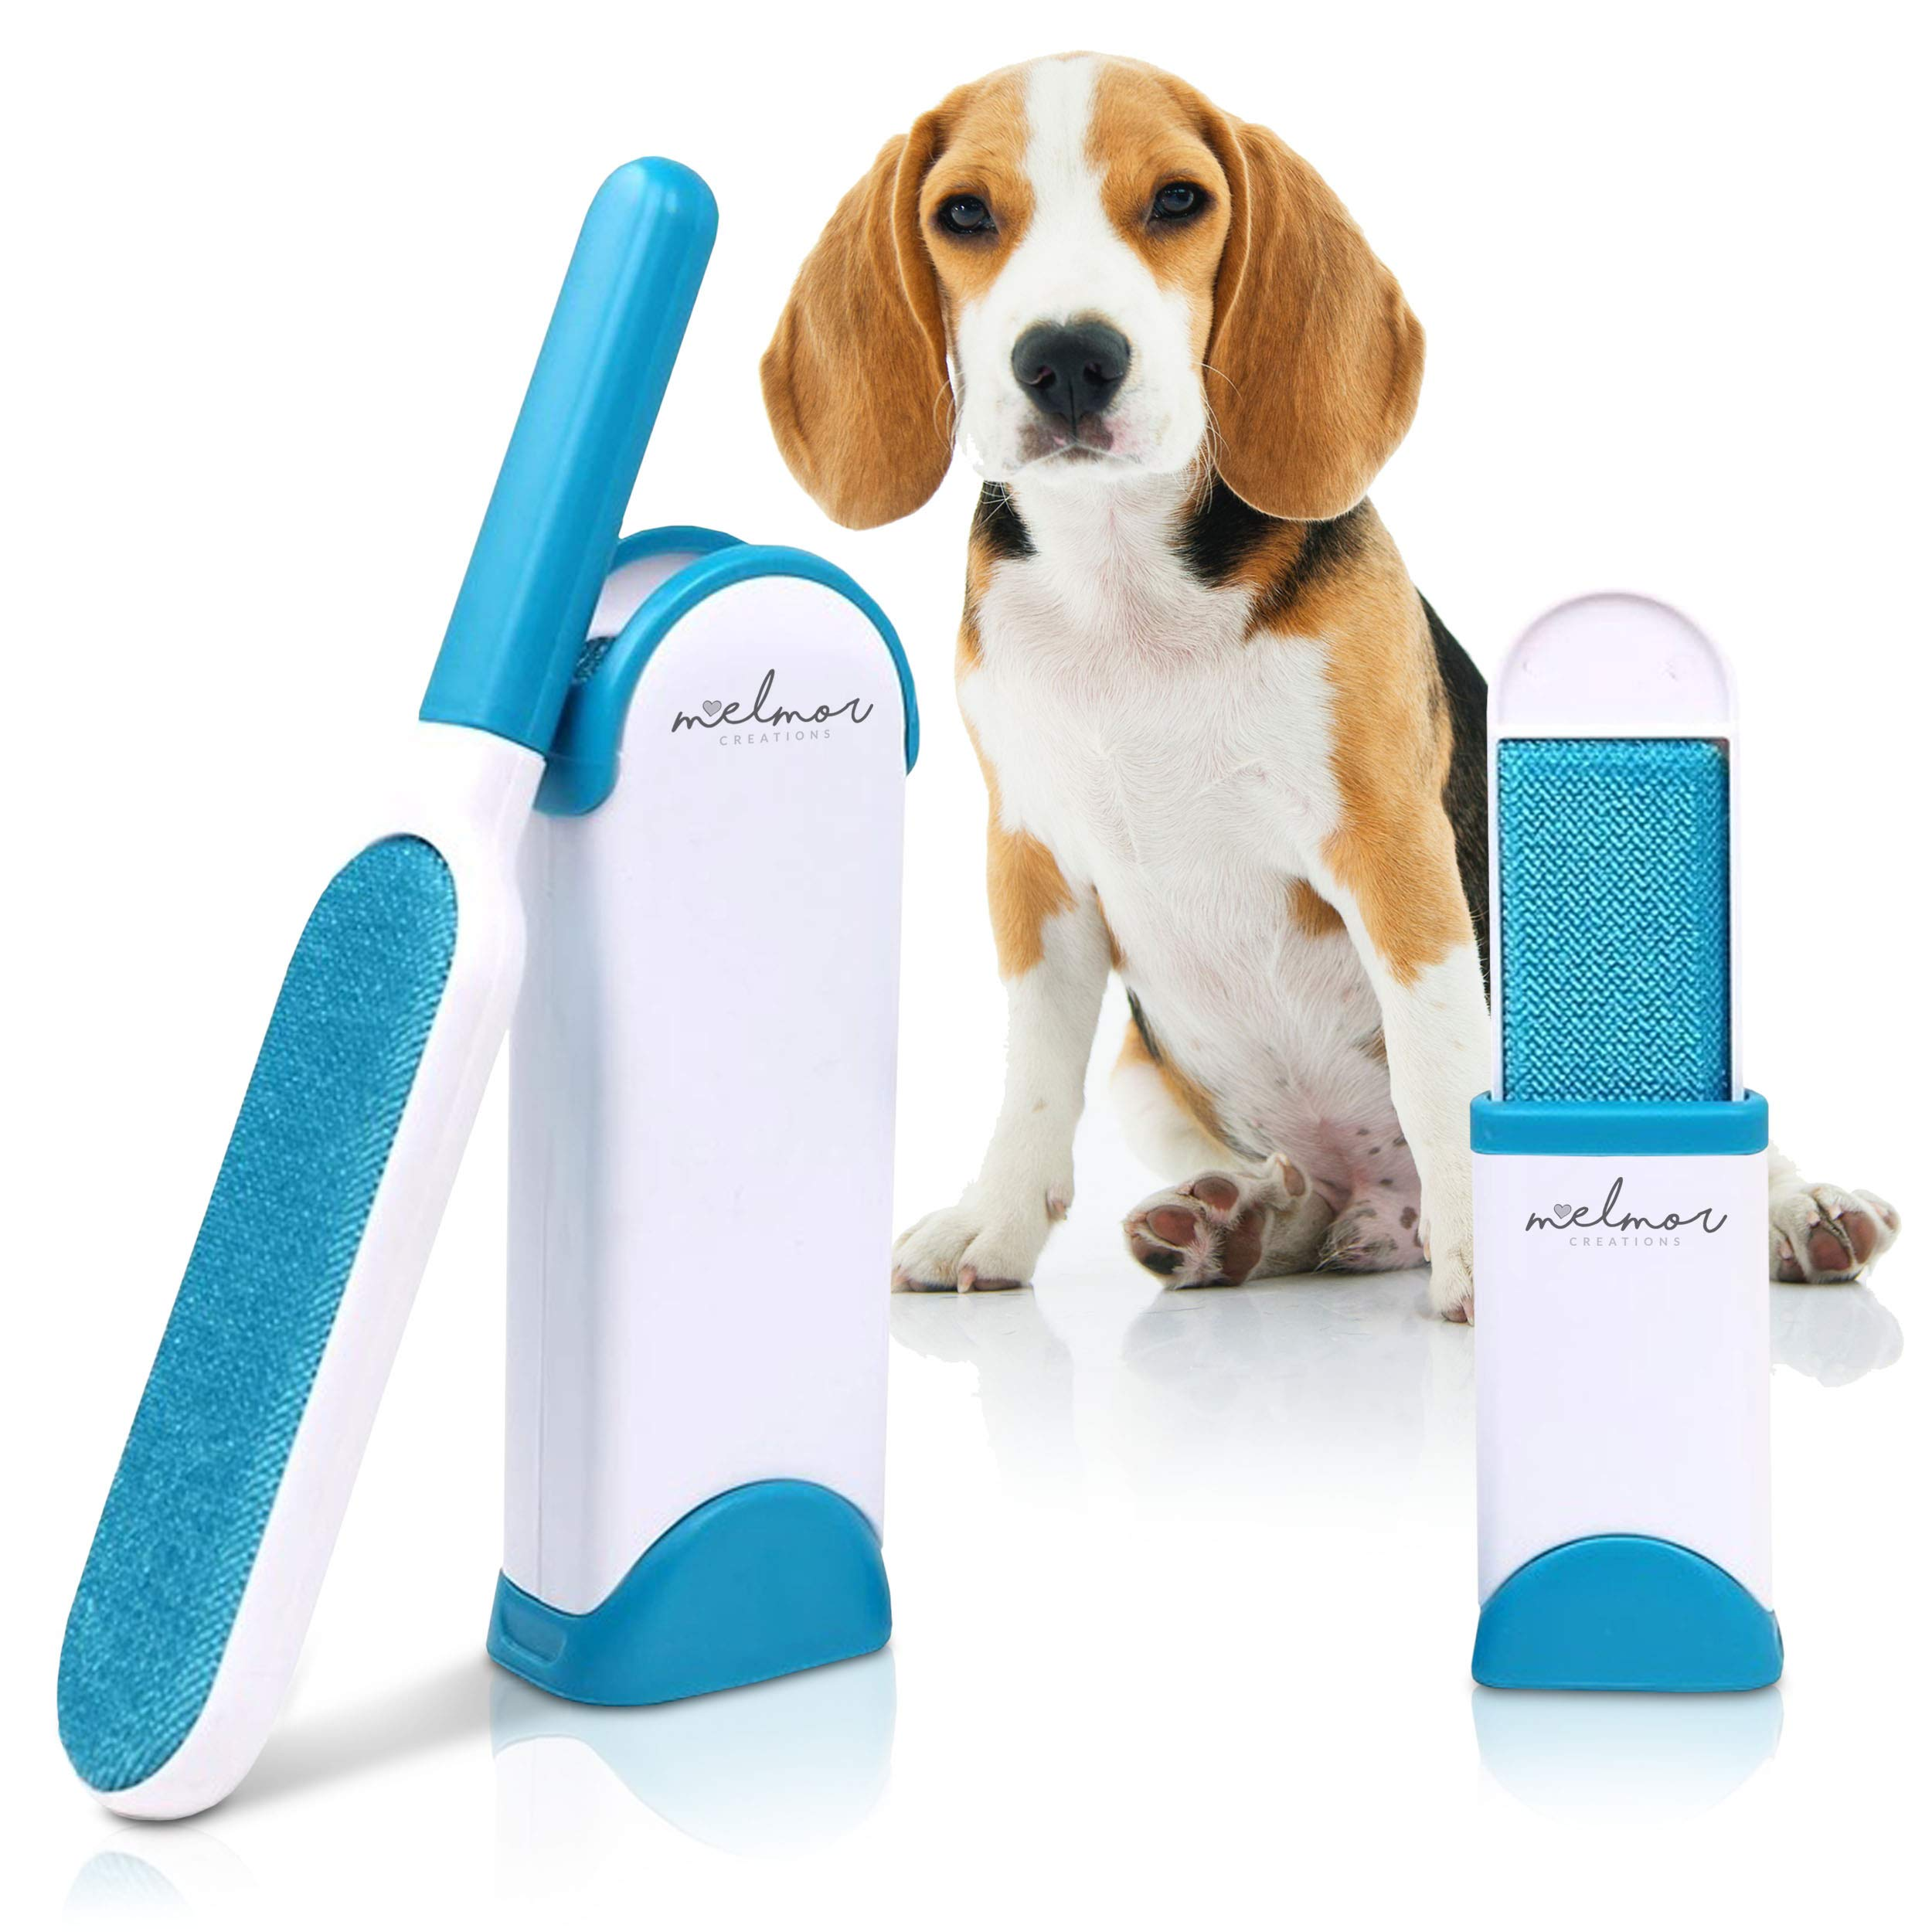 Melmor Creations Pet Hair Remover Brush | Double-Sided Animal Hair Lint Cleaner/Remover with Self-Cleaning Base | Cat & Dog Coats/Paws | Fur Remover Tool for Dog Bed, Furniture, Clothes & house (BLUE)